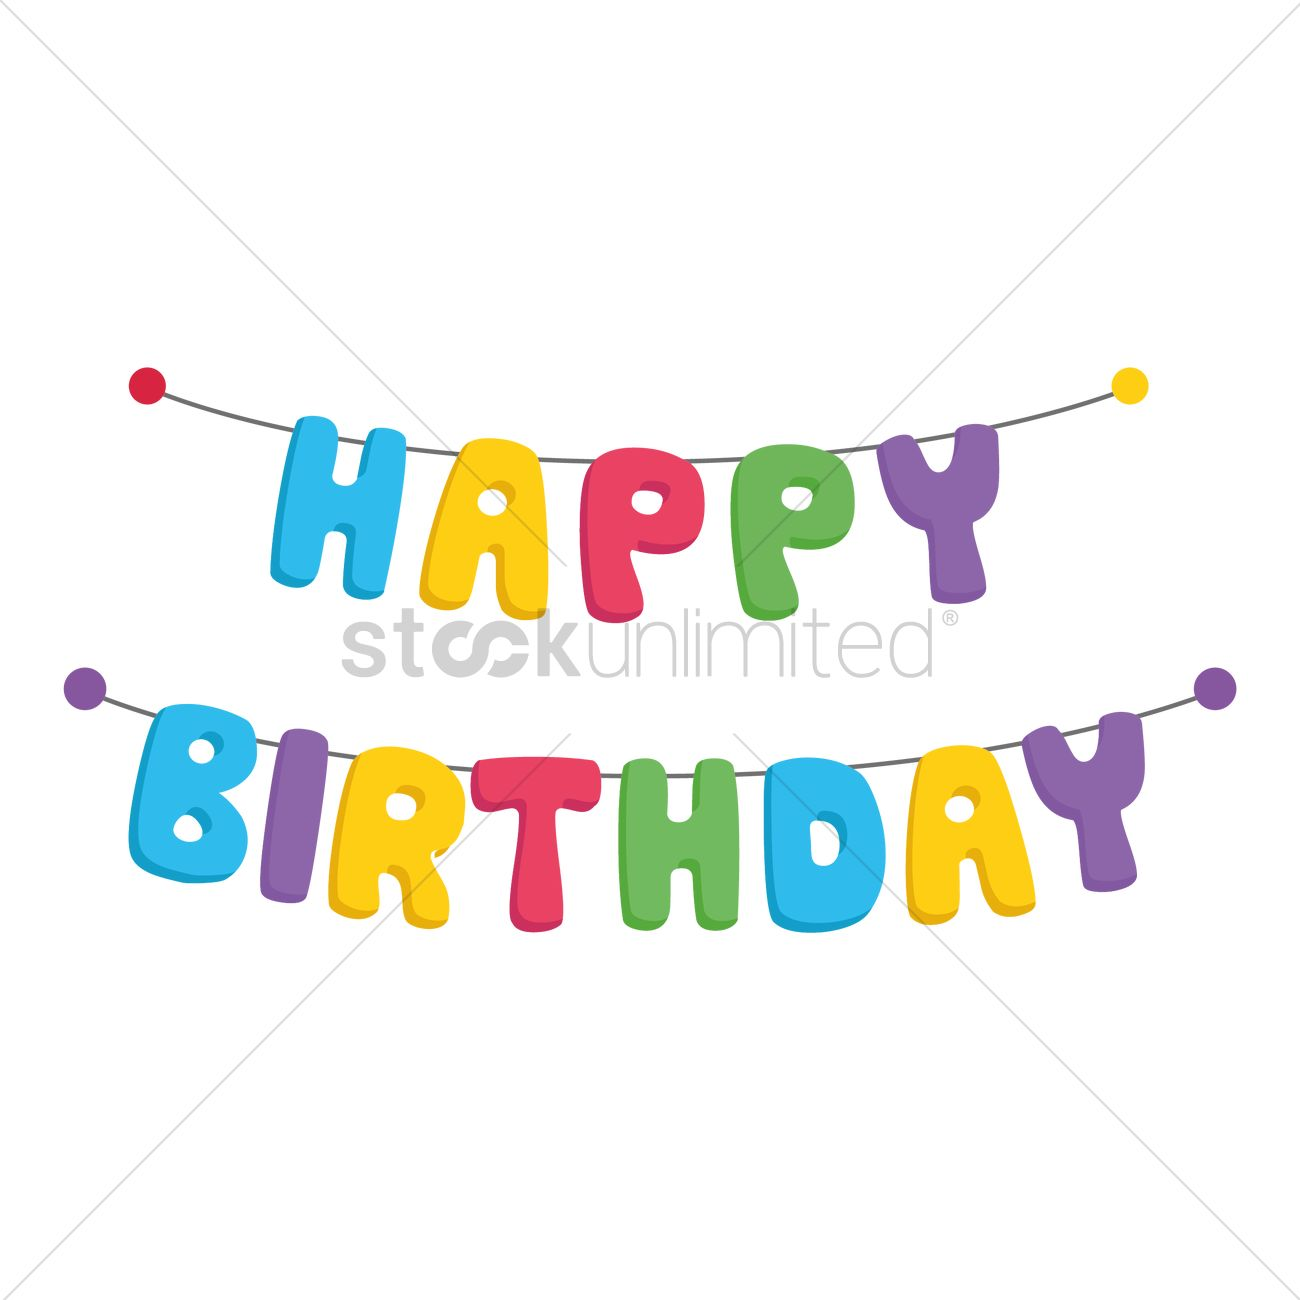 Happy Birthday Bunting Vector Image 1389010 Stockunlimited